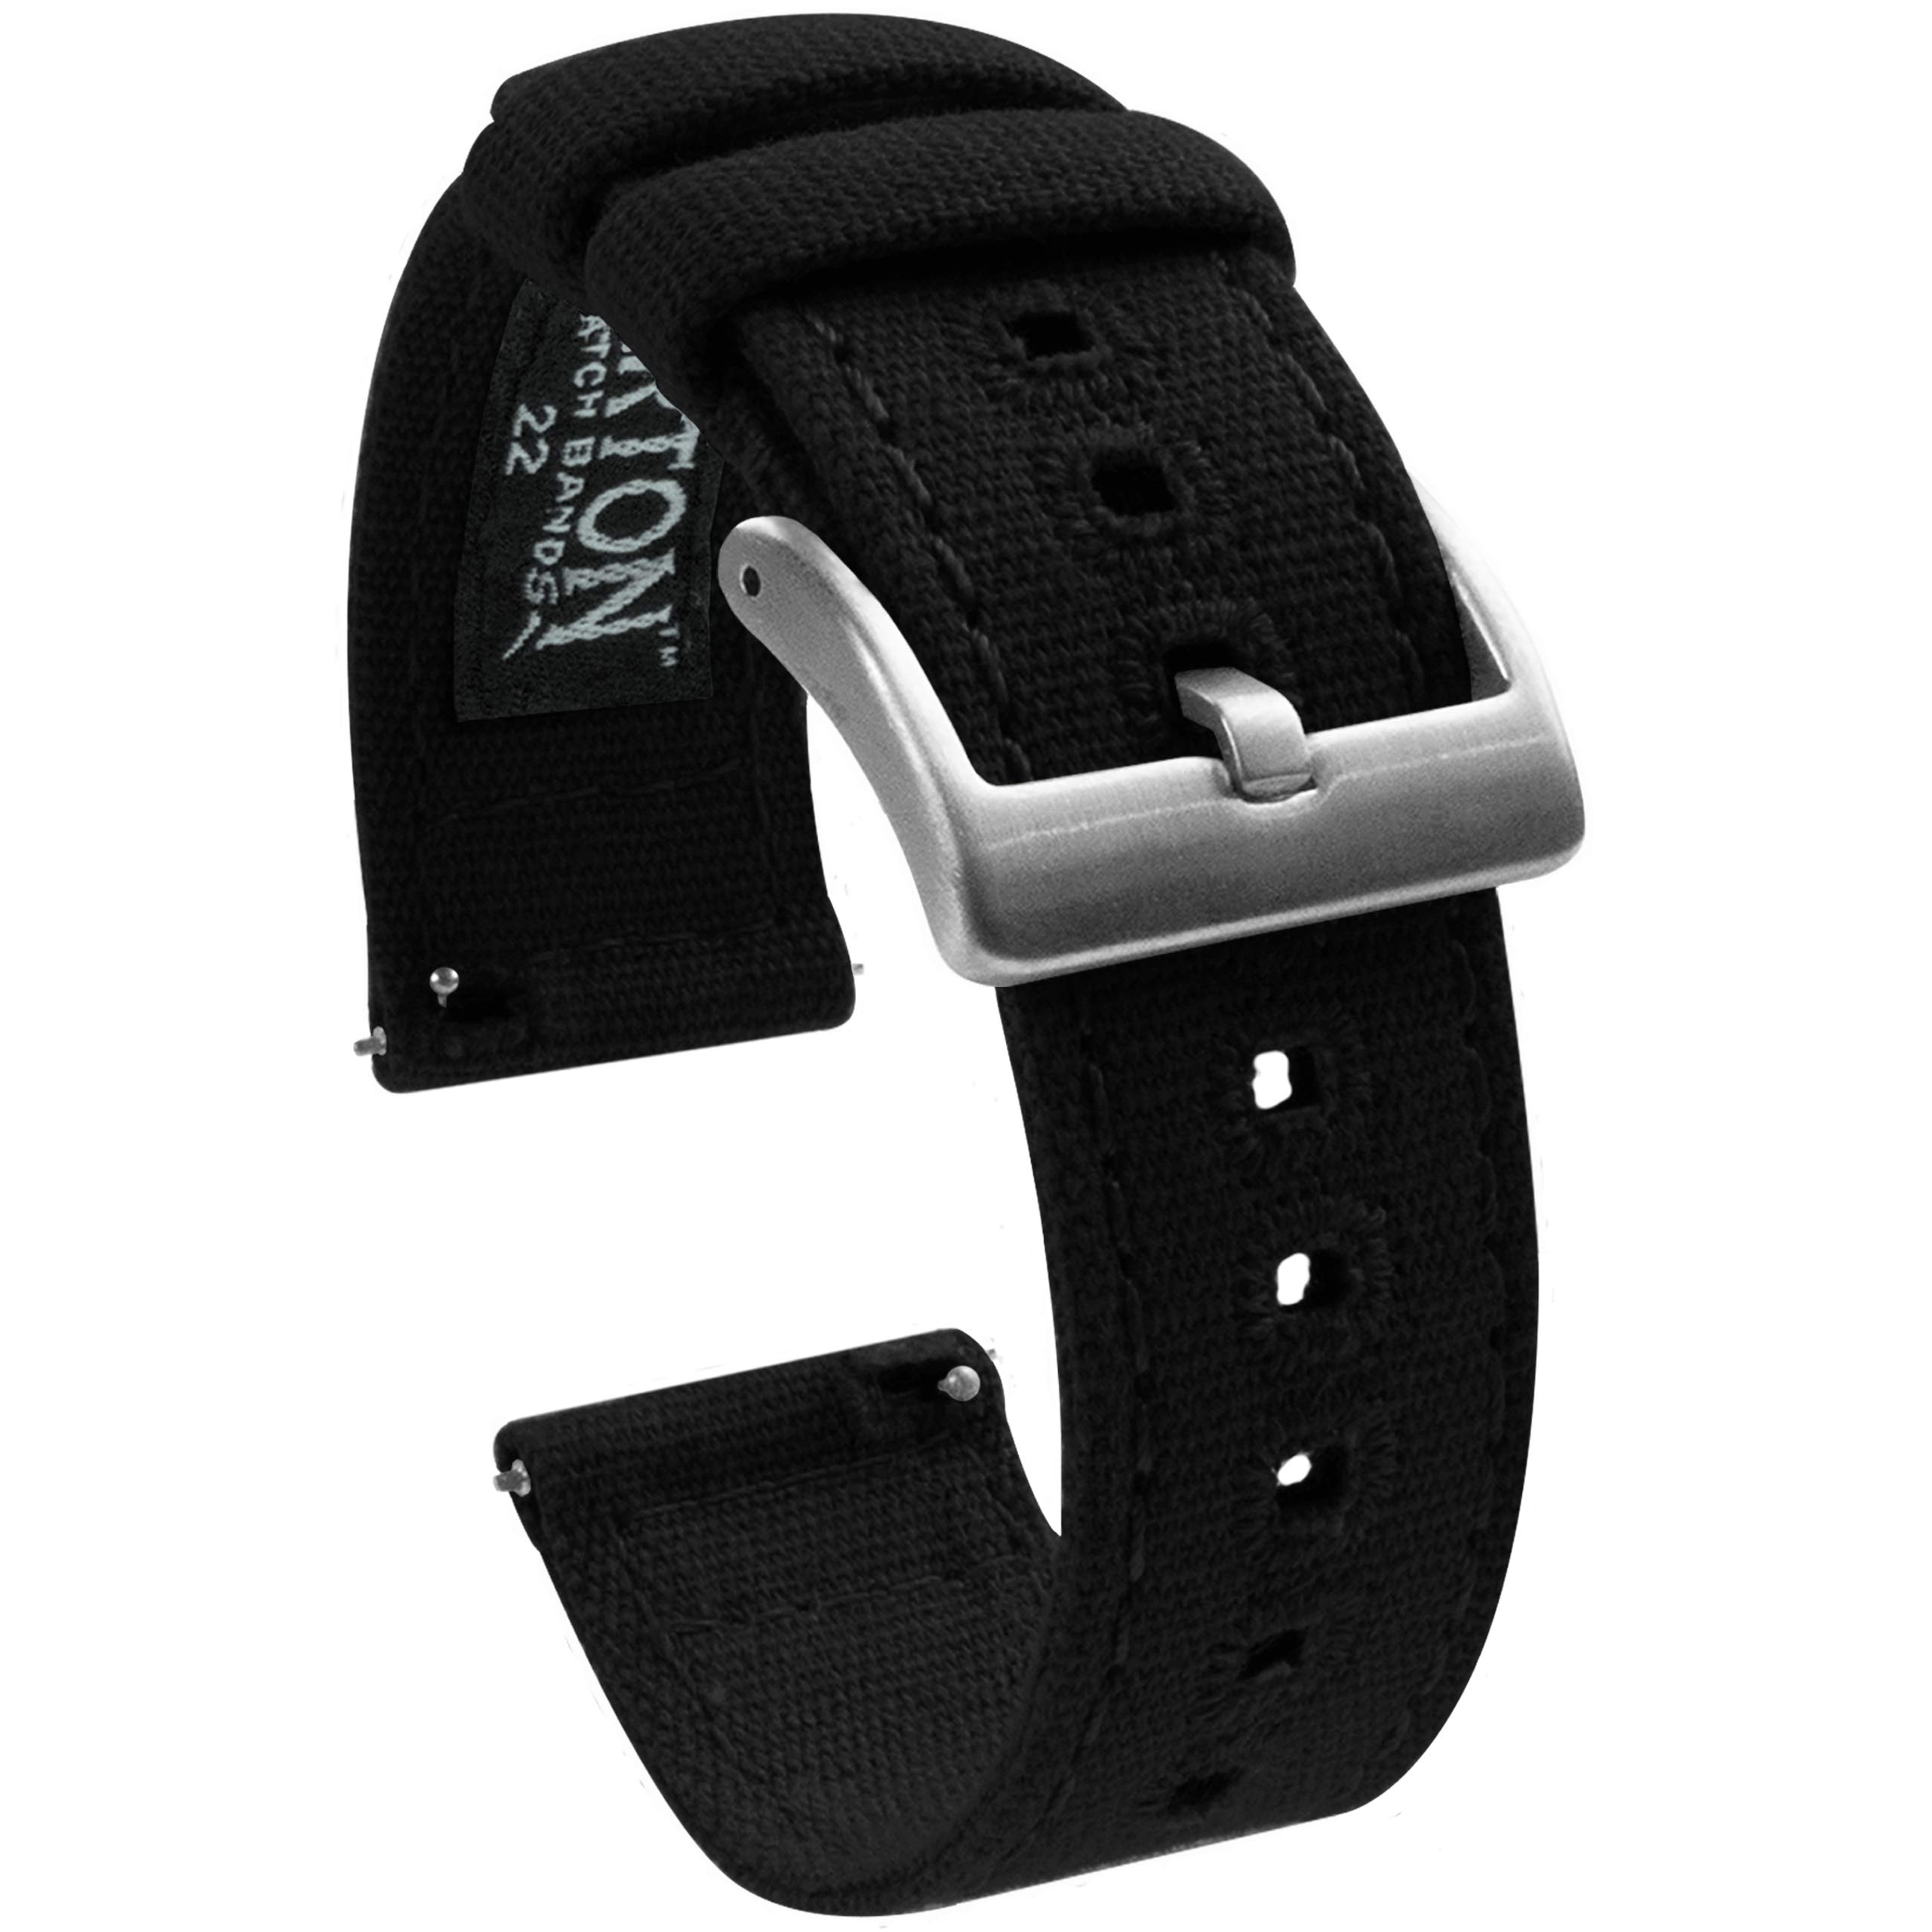 22mm Black - Barton Canvas Quick Release Watch Band Straps - Choose Color & Width - 18mm, 19mm, 20mm, 21mm, 22mm, or 23mm by Barton Watch Bands